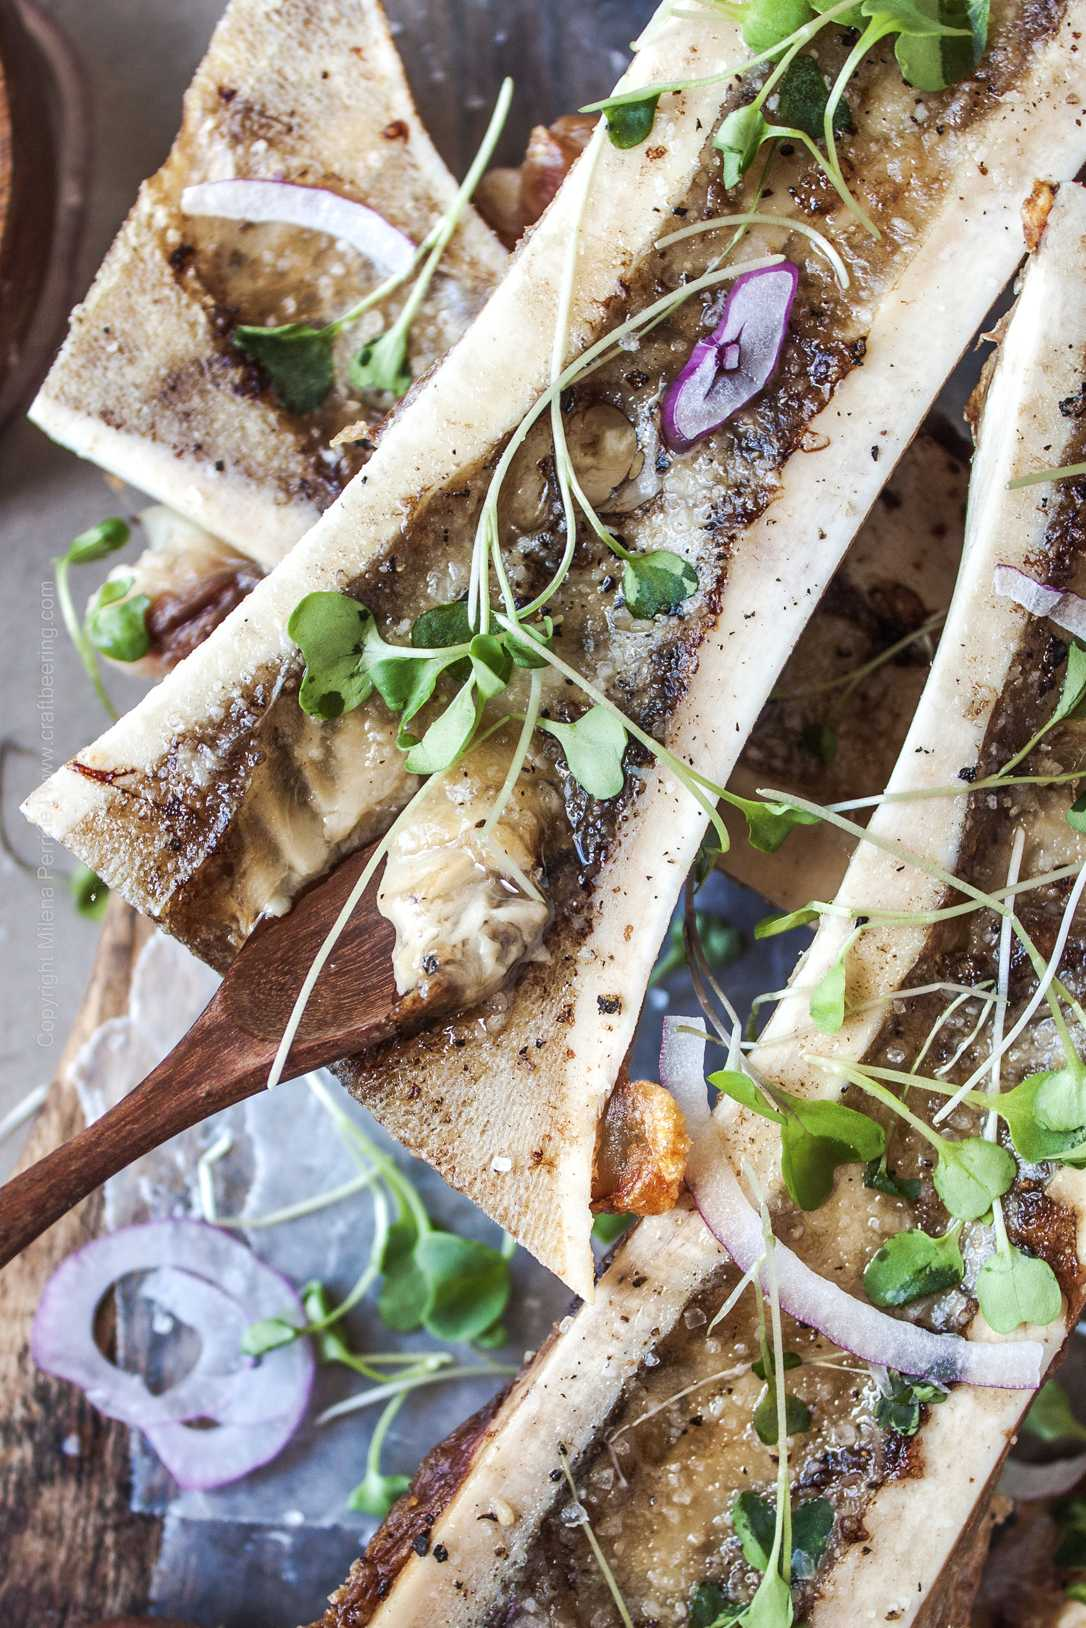 Roasted bone marrow is easily scooped with a small spoon. It's spreadable texture is perfect for toast or freshly baked bread.